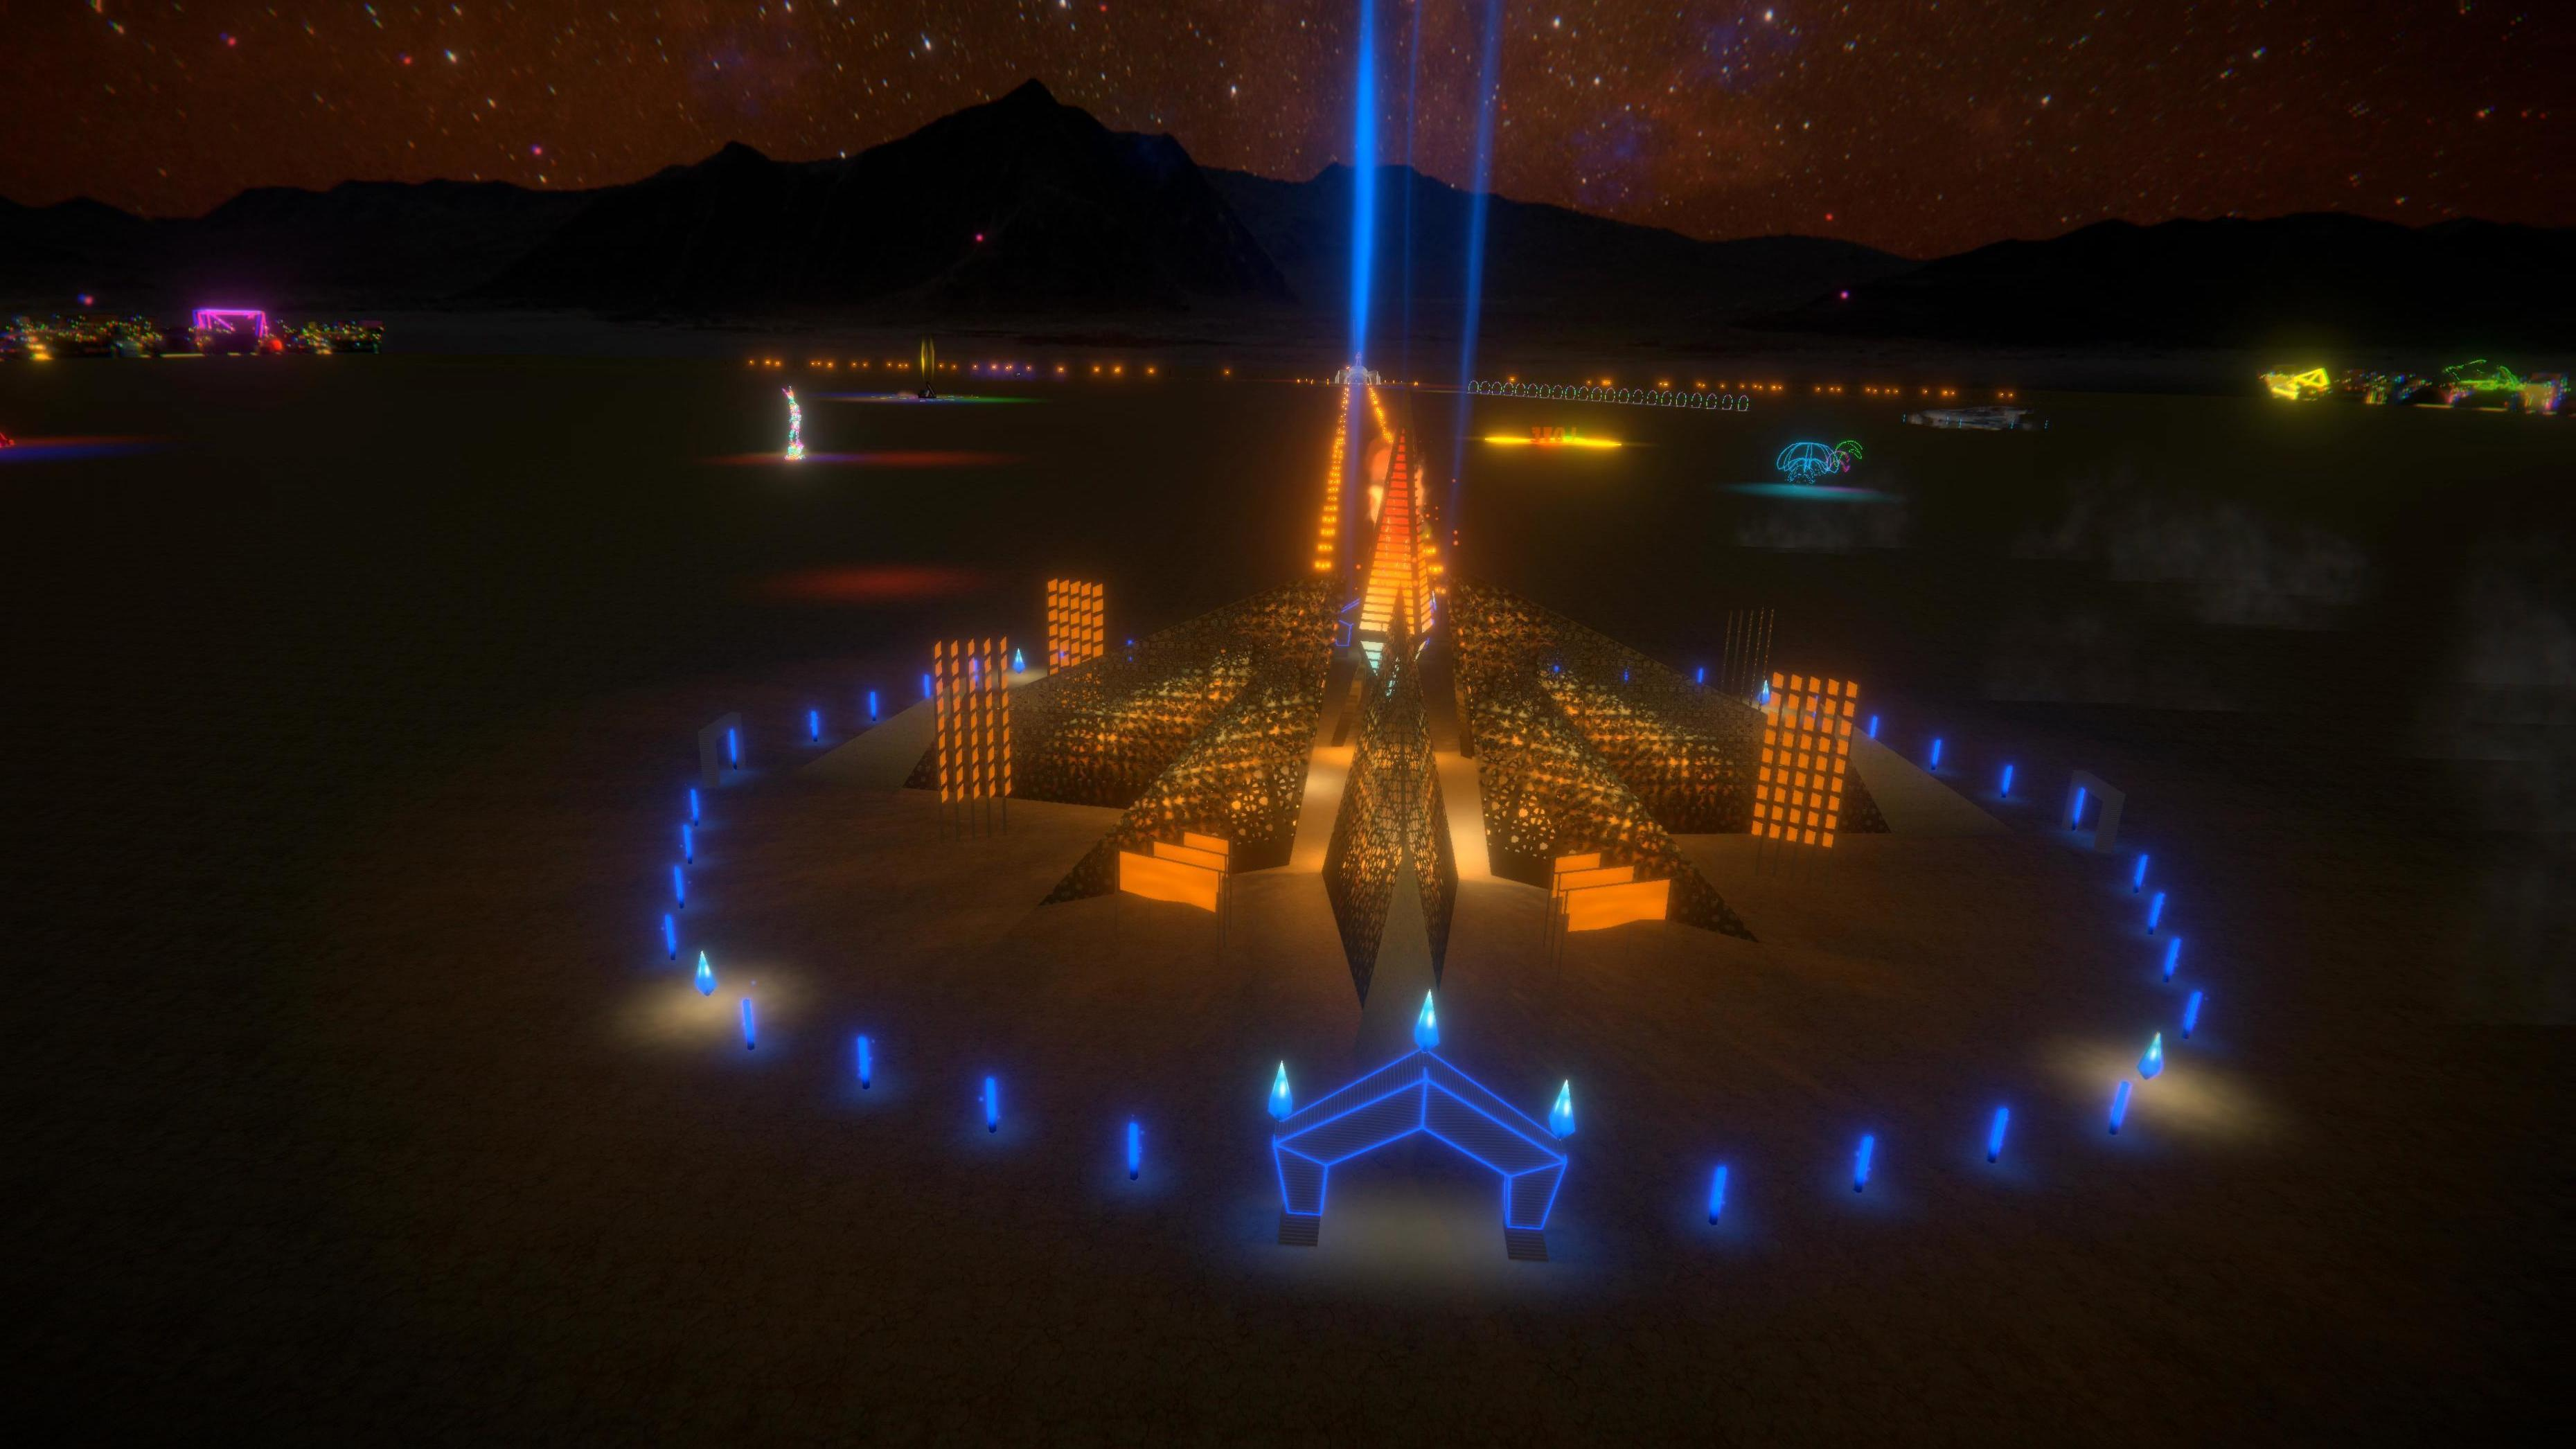 """The Multiverse Ethereal Empyrean Experience, by Laurence """"Renzo"""" Verbeck and Sylvia Adrienne Lisse, was selected as the official Black Rock City Temple for 2020."""